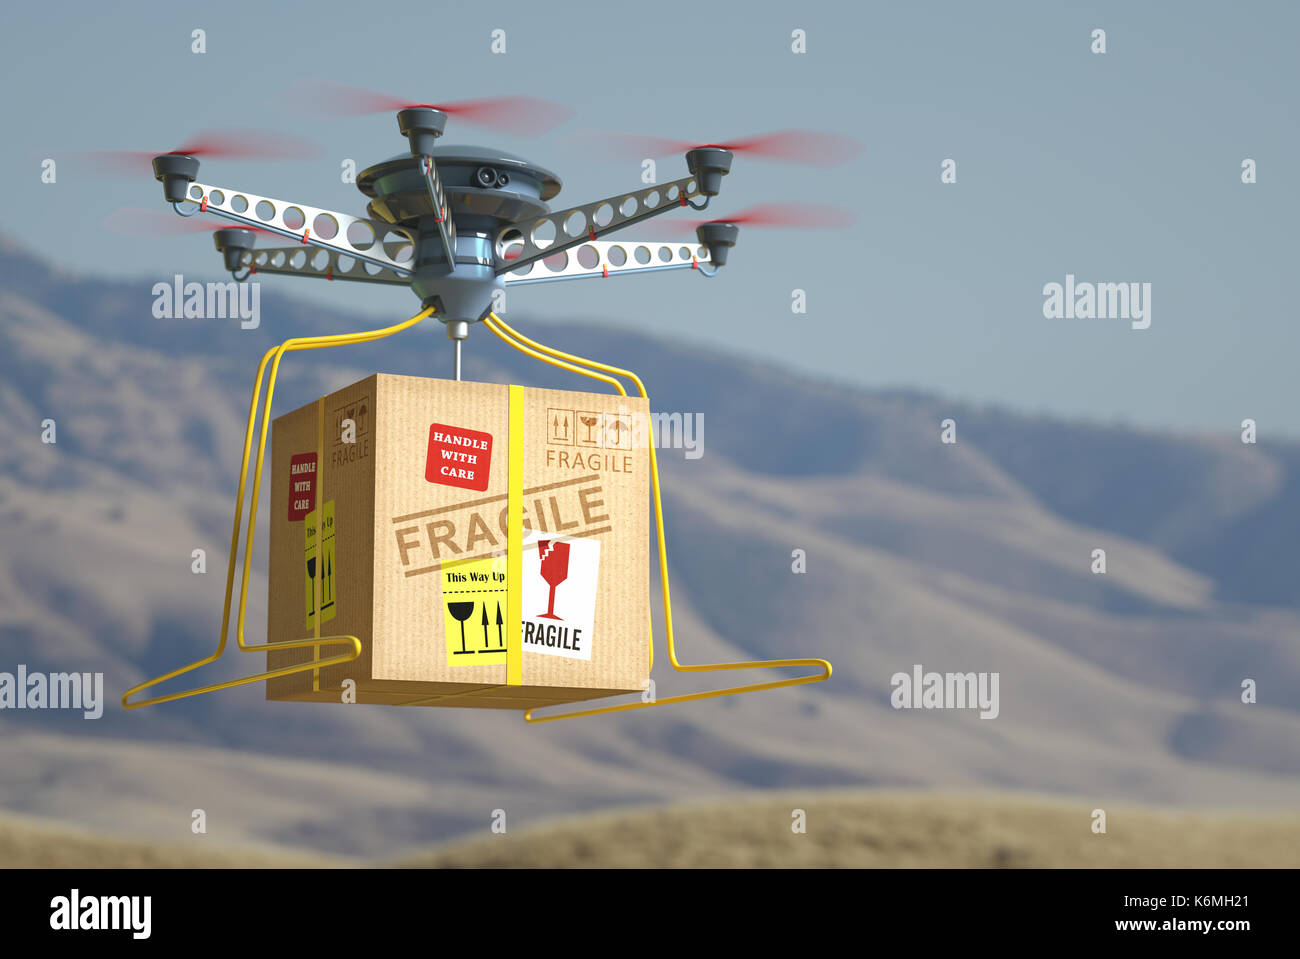 Parcel delivery via drone. The future of mail. - Stock Image